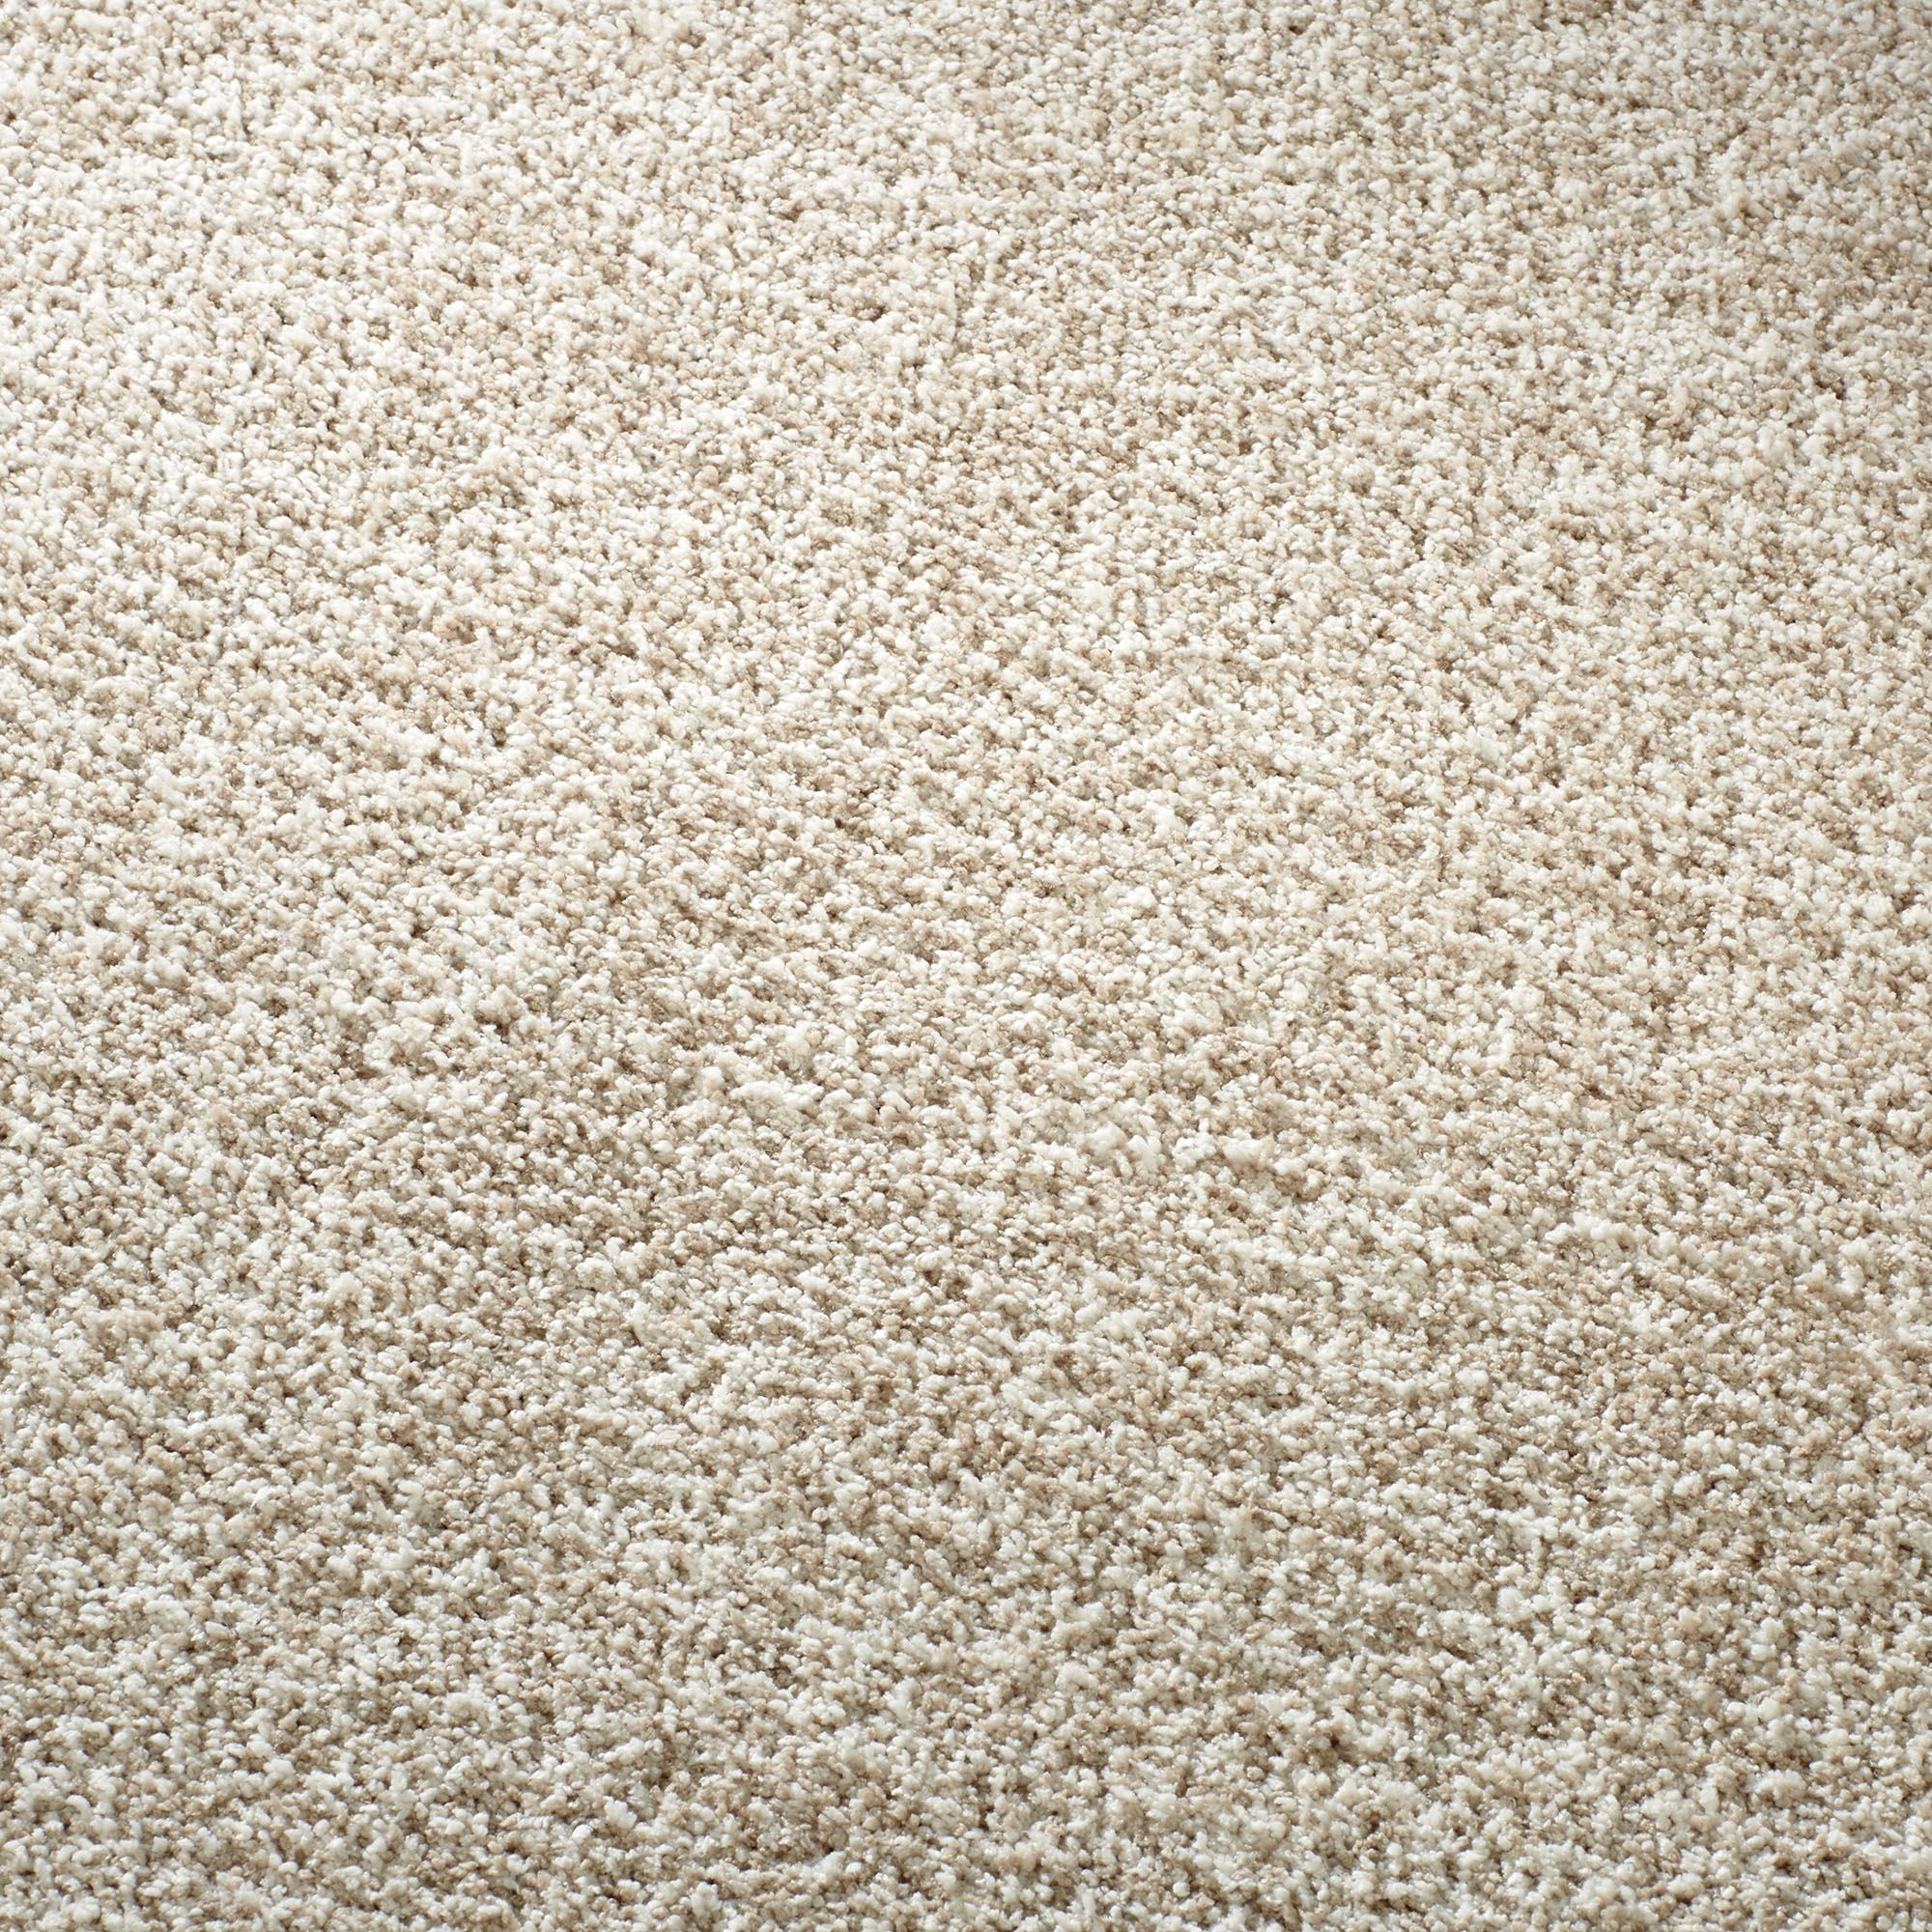 solid orian or safavieh plush shop divulge the area shag rugs collection ip walmart runner com lavena rug